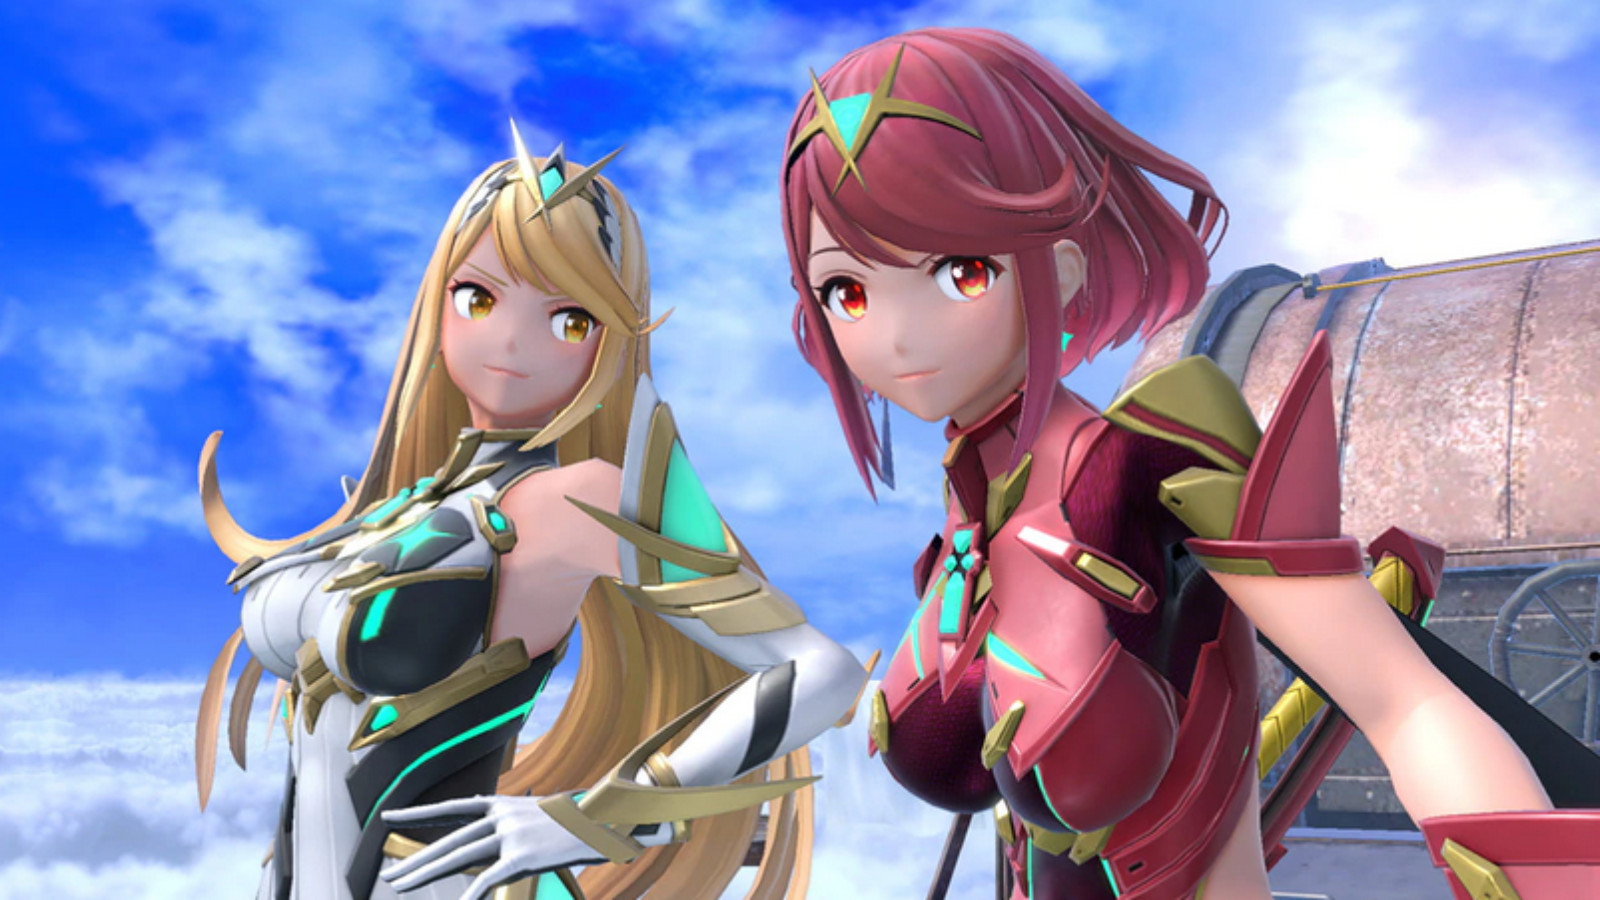 Pyra in Smash Ultimate